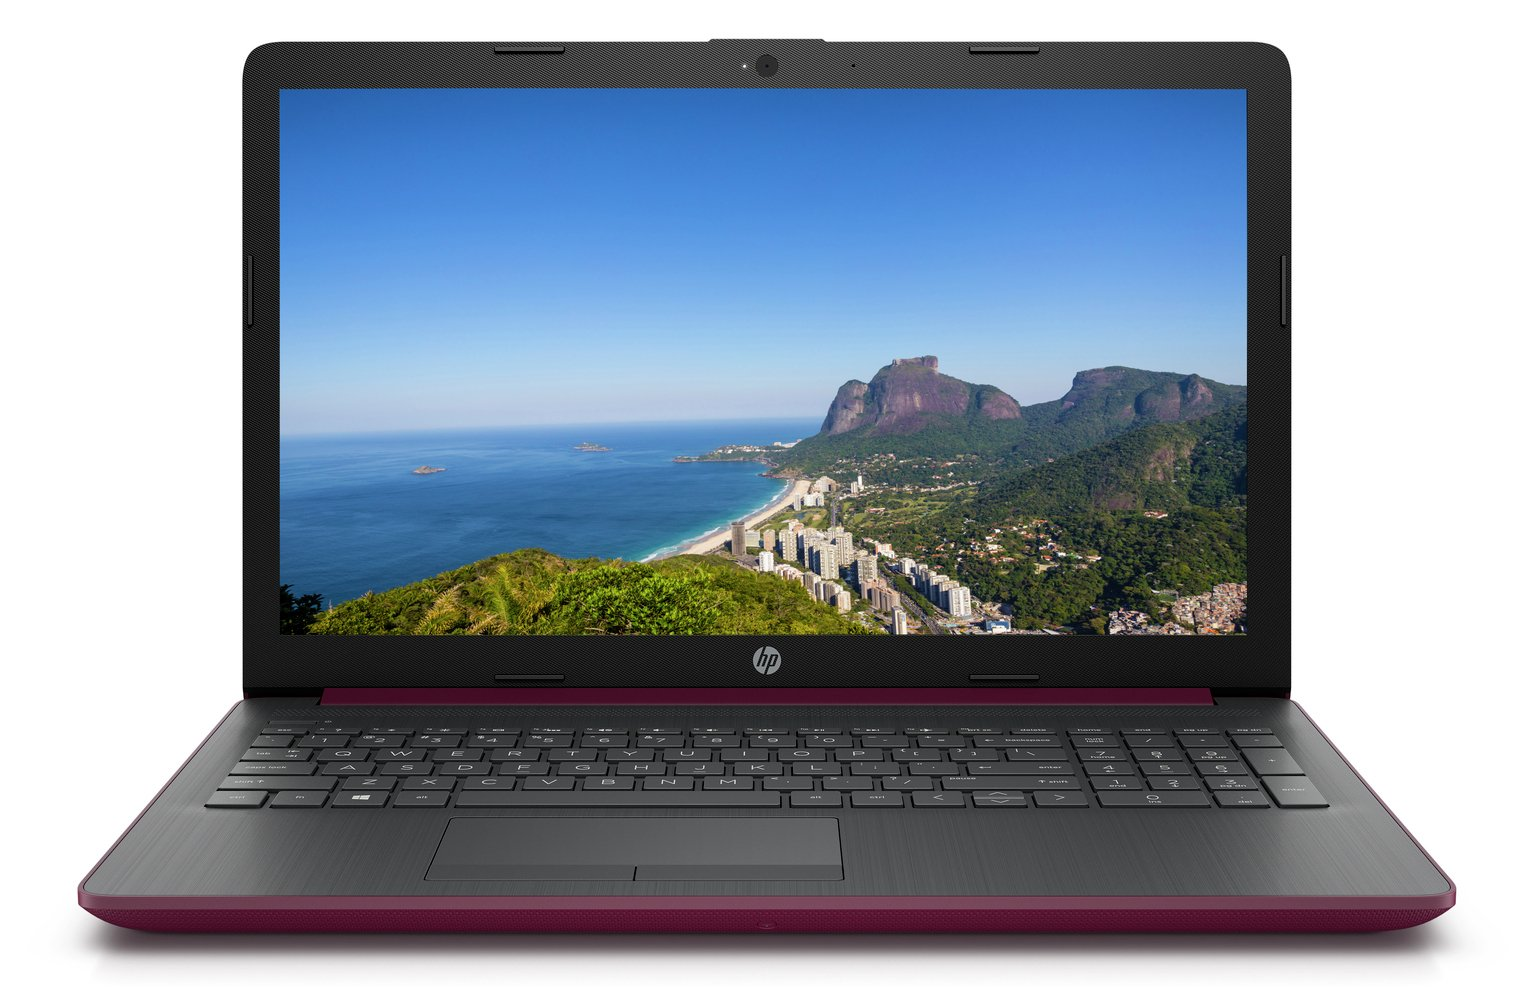 HP 15.6 Inch Celeron 4GB 1TB FHD Laptop - Mauve